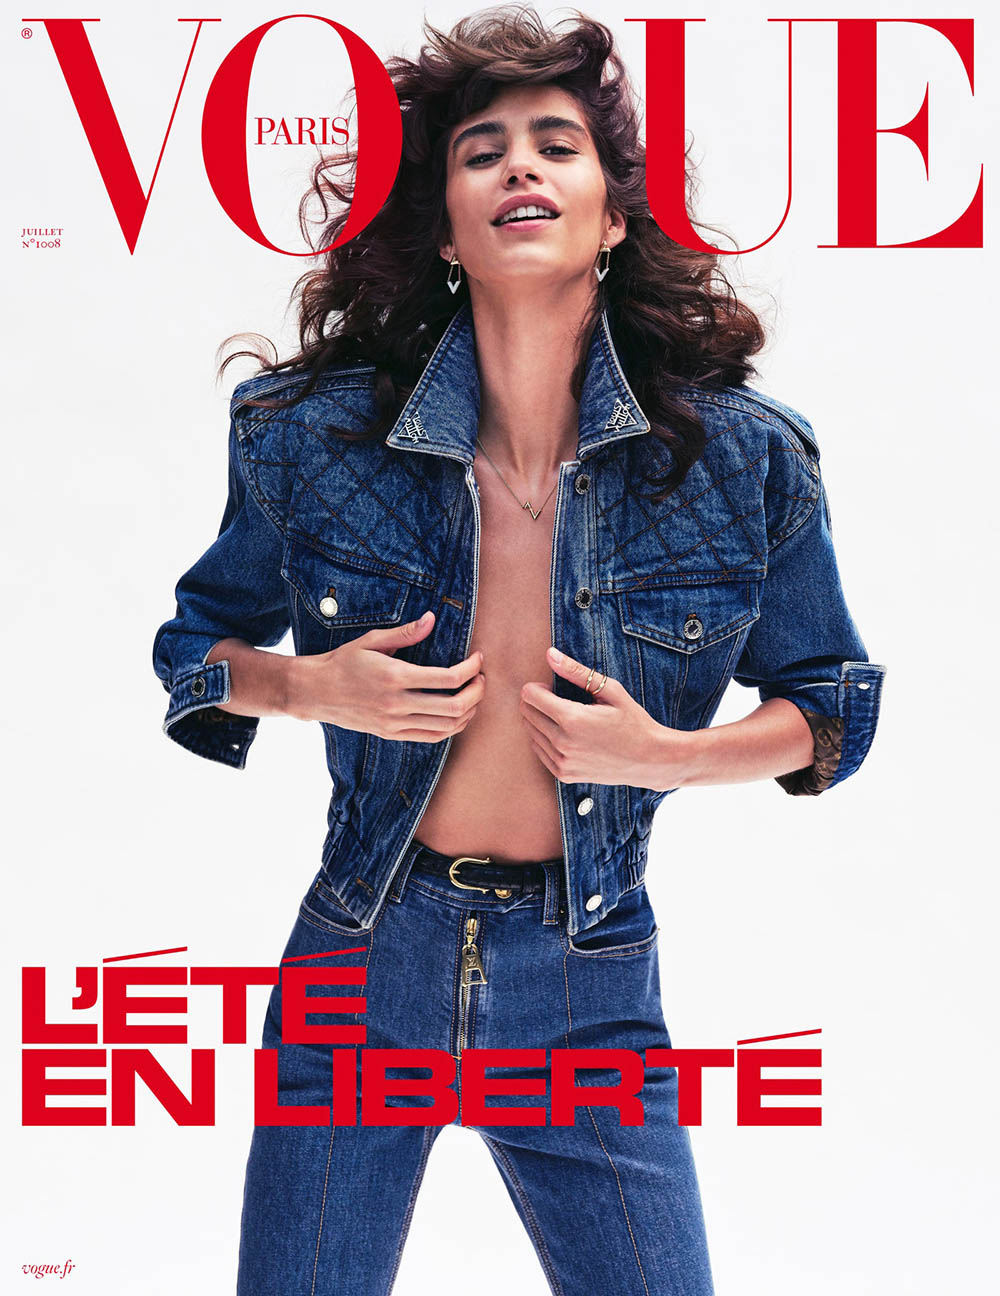 Mica Argañaraz covers Vogue Paris July 2020 by Nathaniel Goldberg